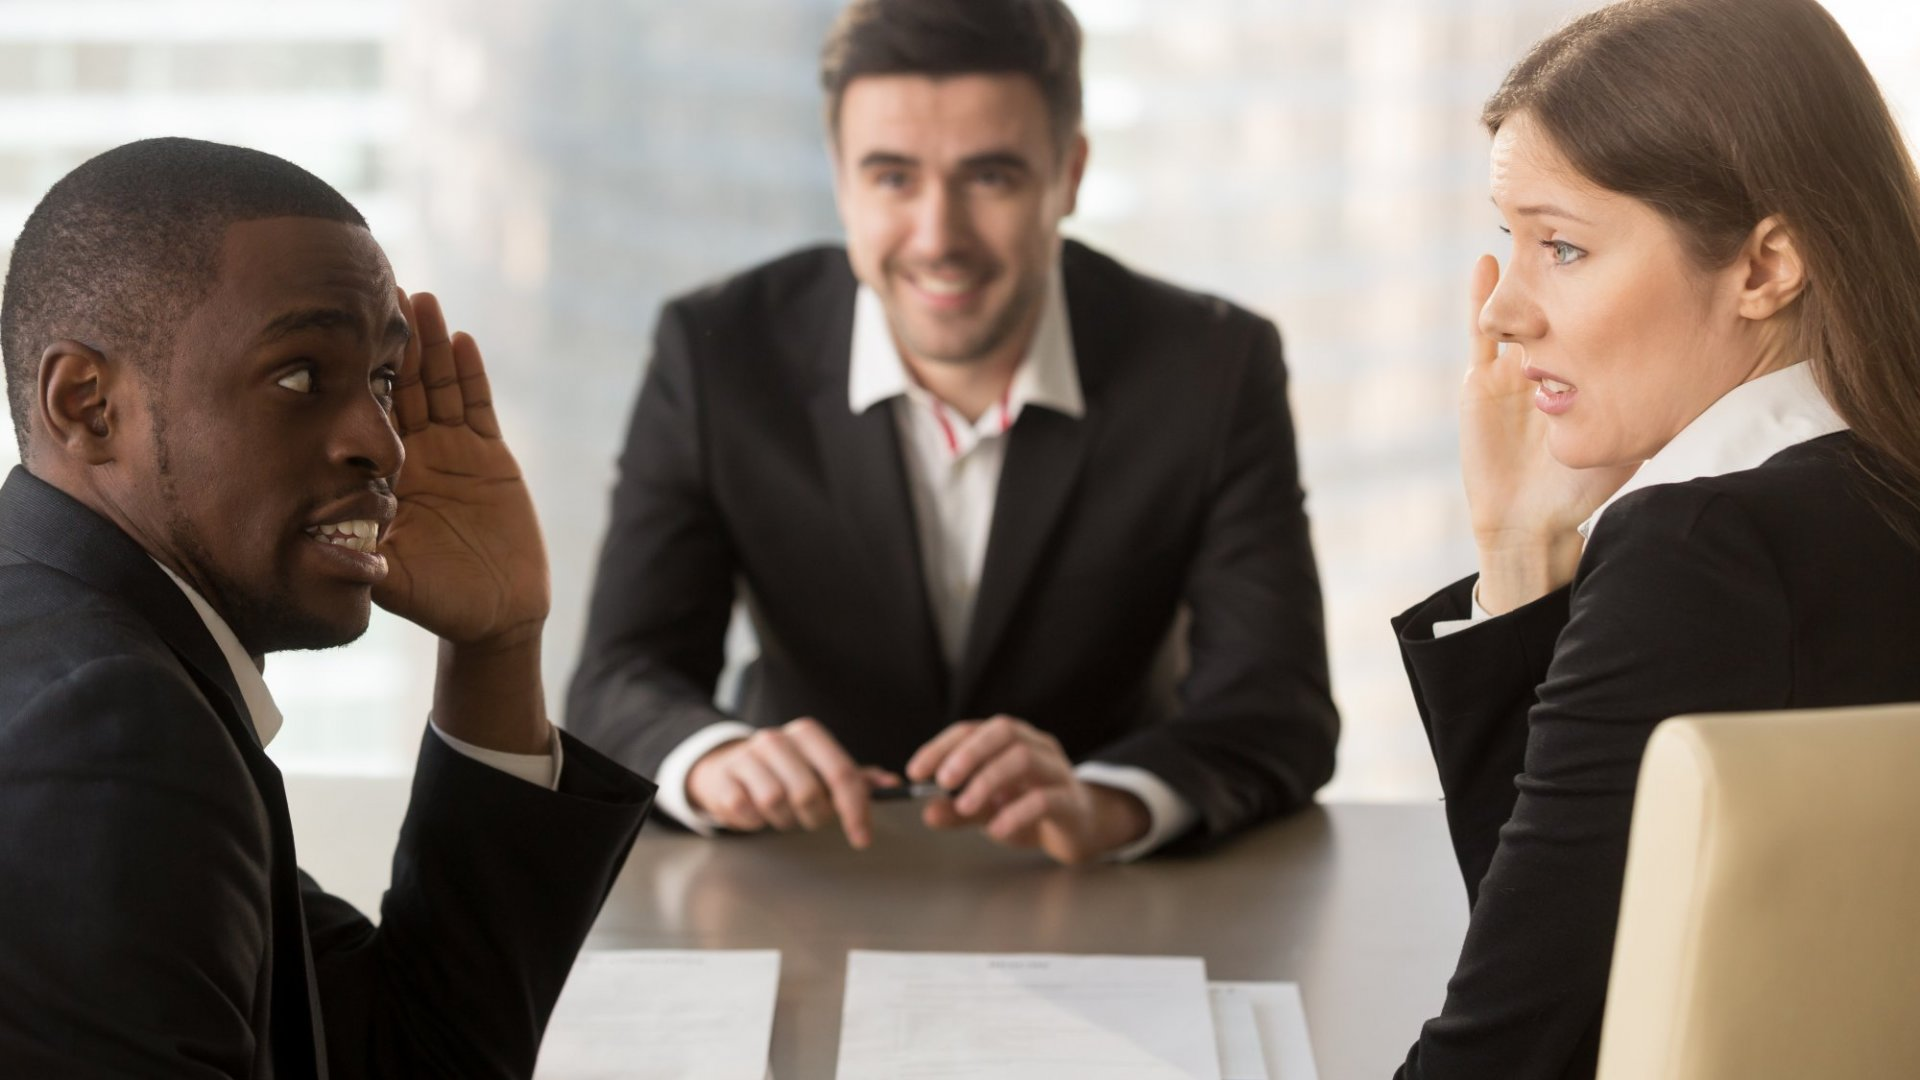 3 Things You Should Never Do Before Selling Your Business